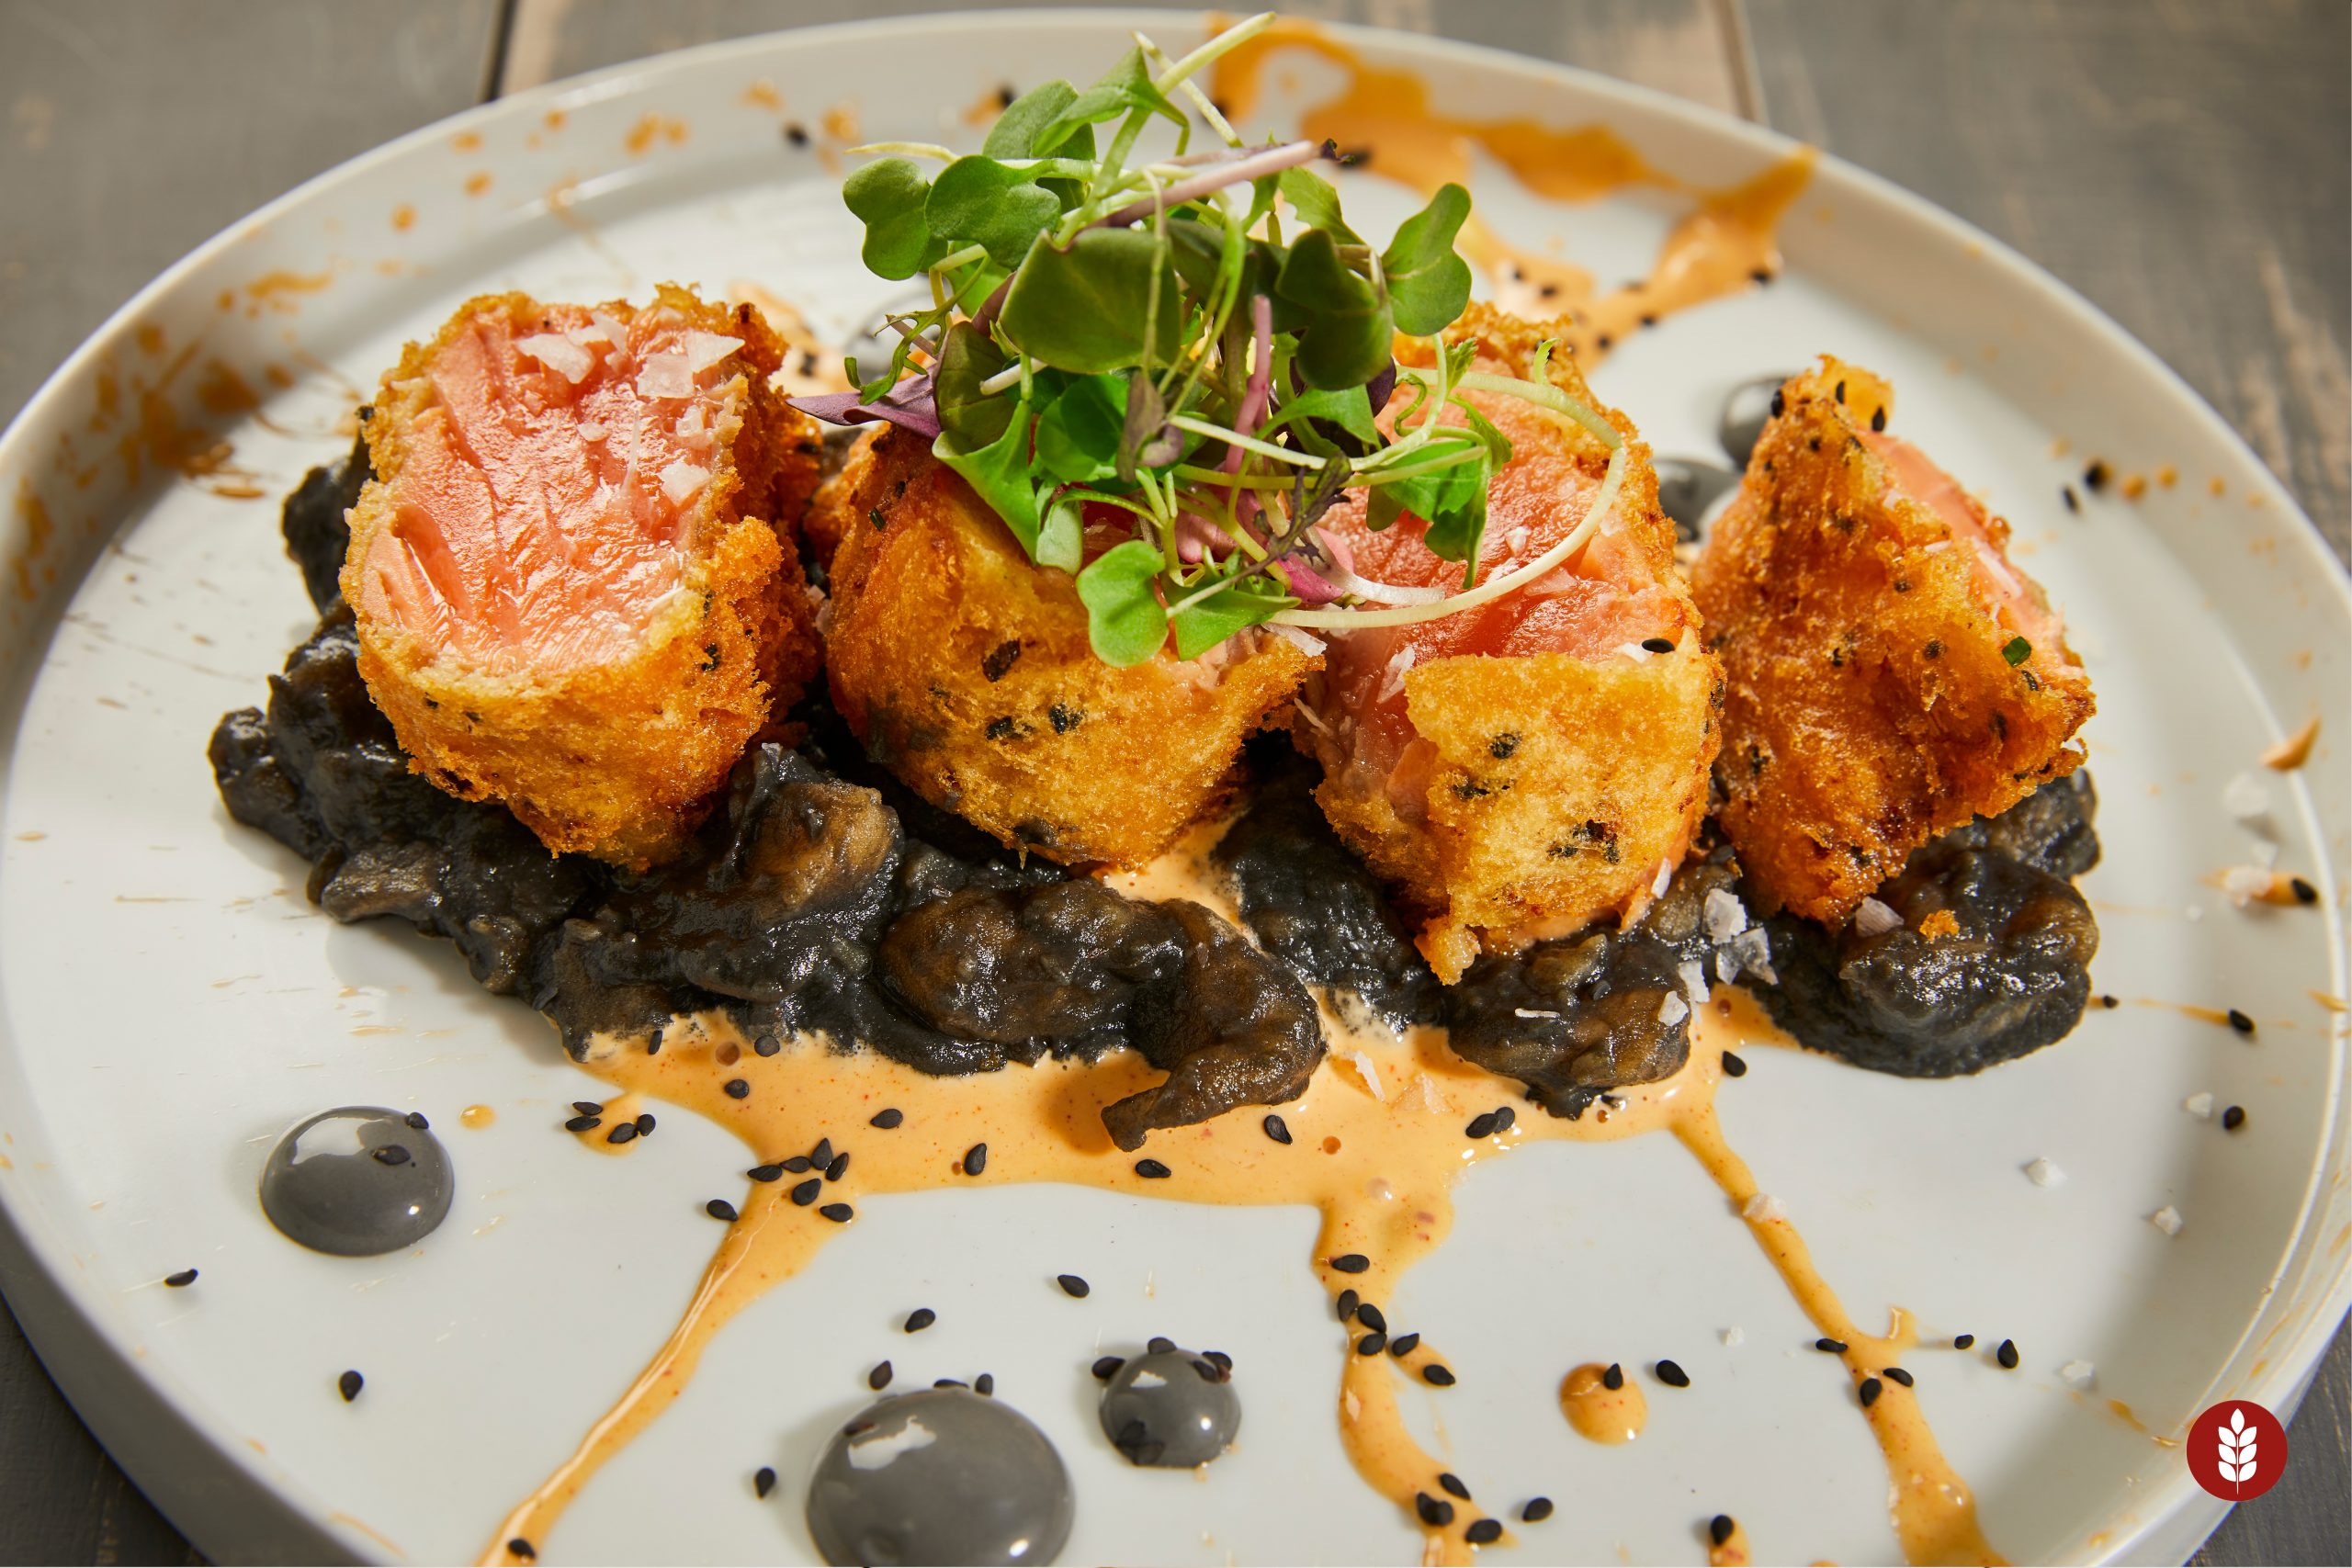 TEMPURA SALMON WITH BLACK GARLIC PARMETIER